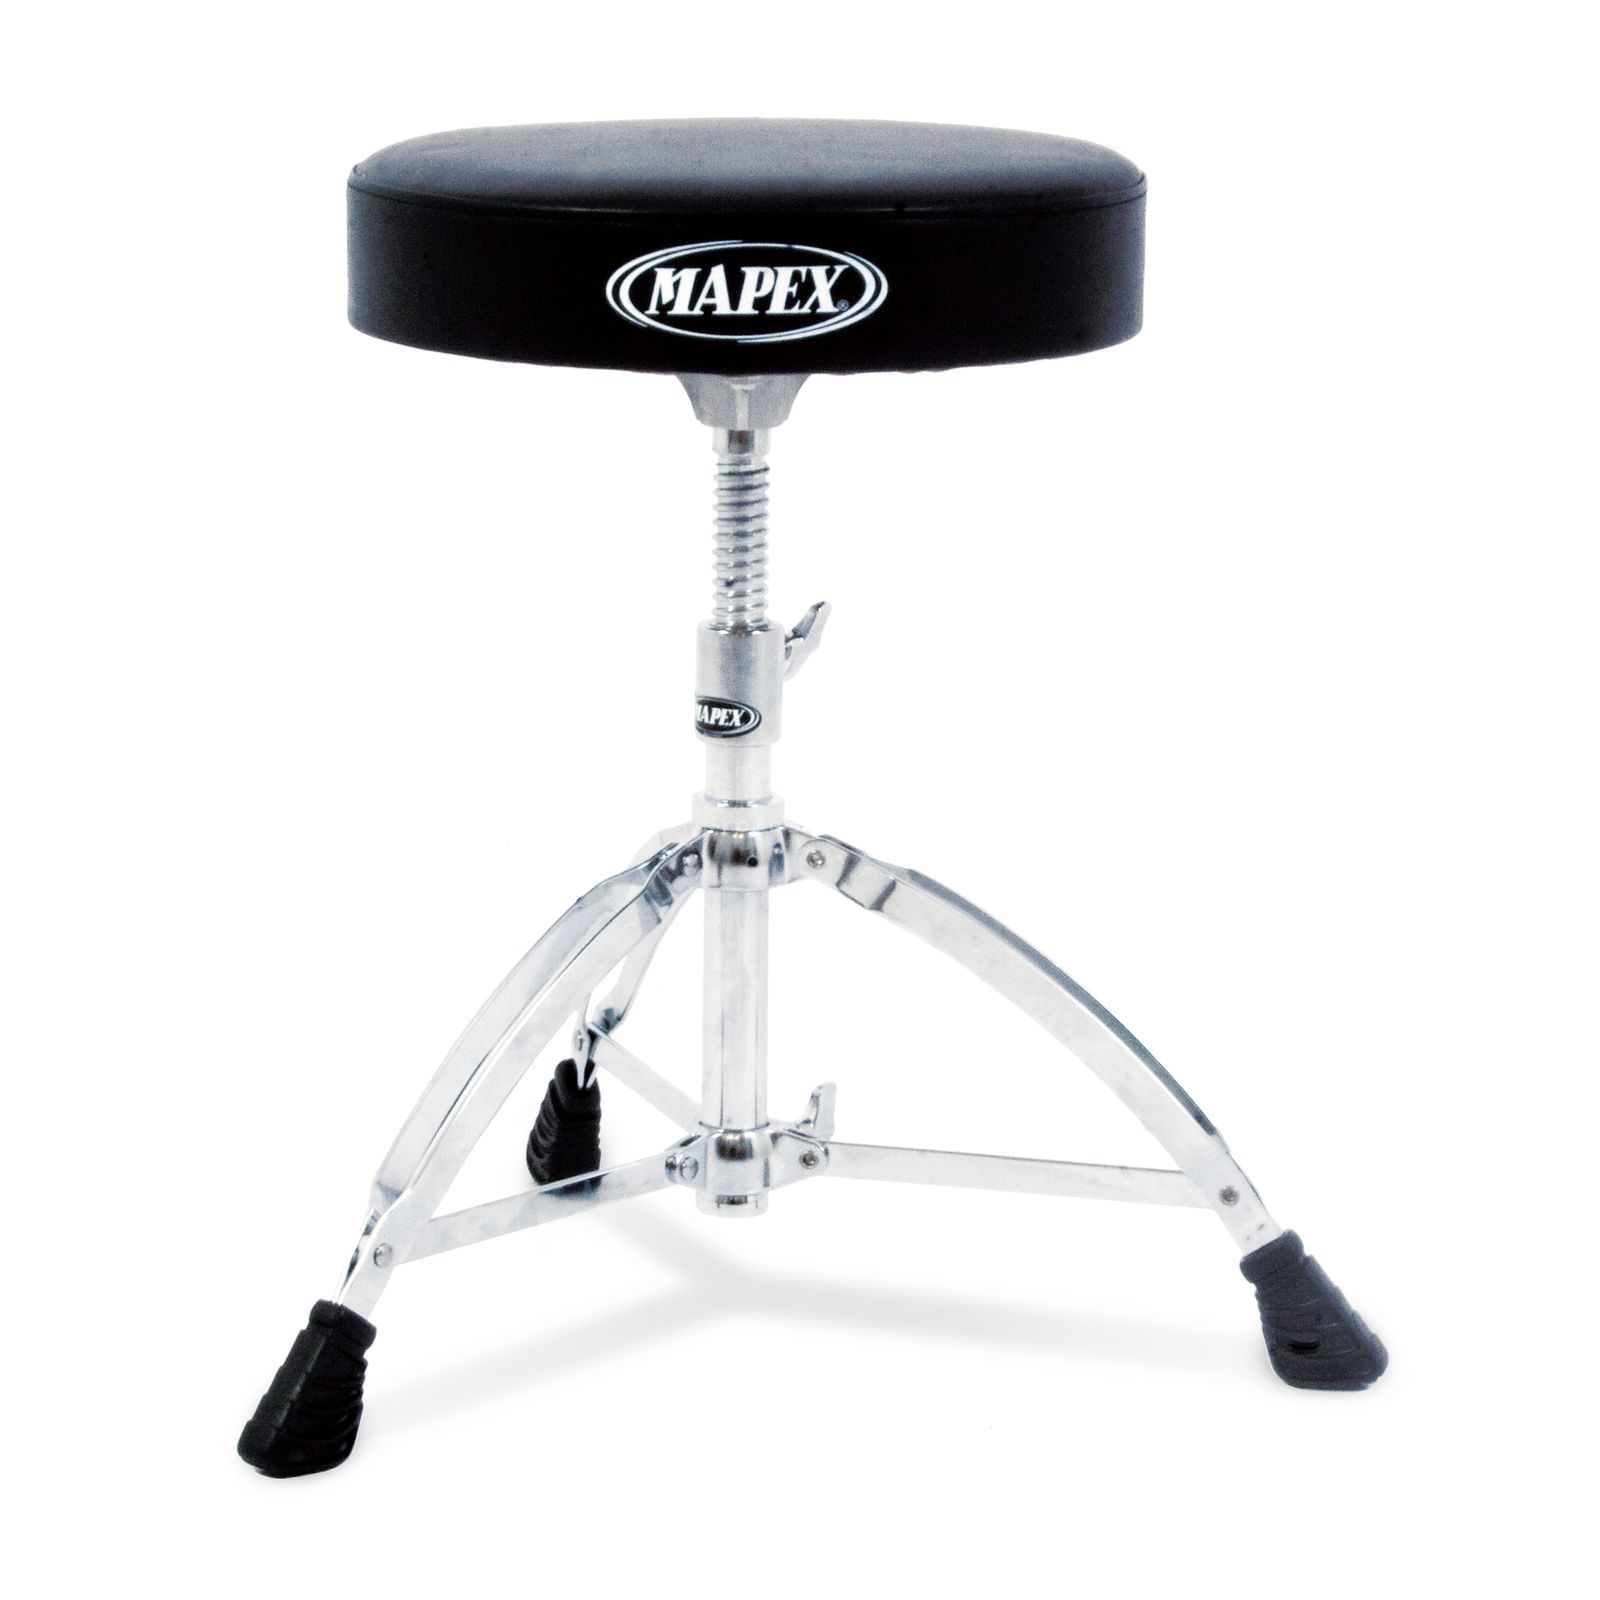 Mapex Drum Throne T561A, round seat Product Image